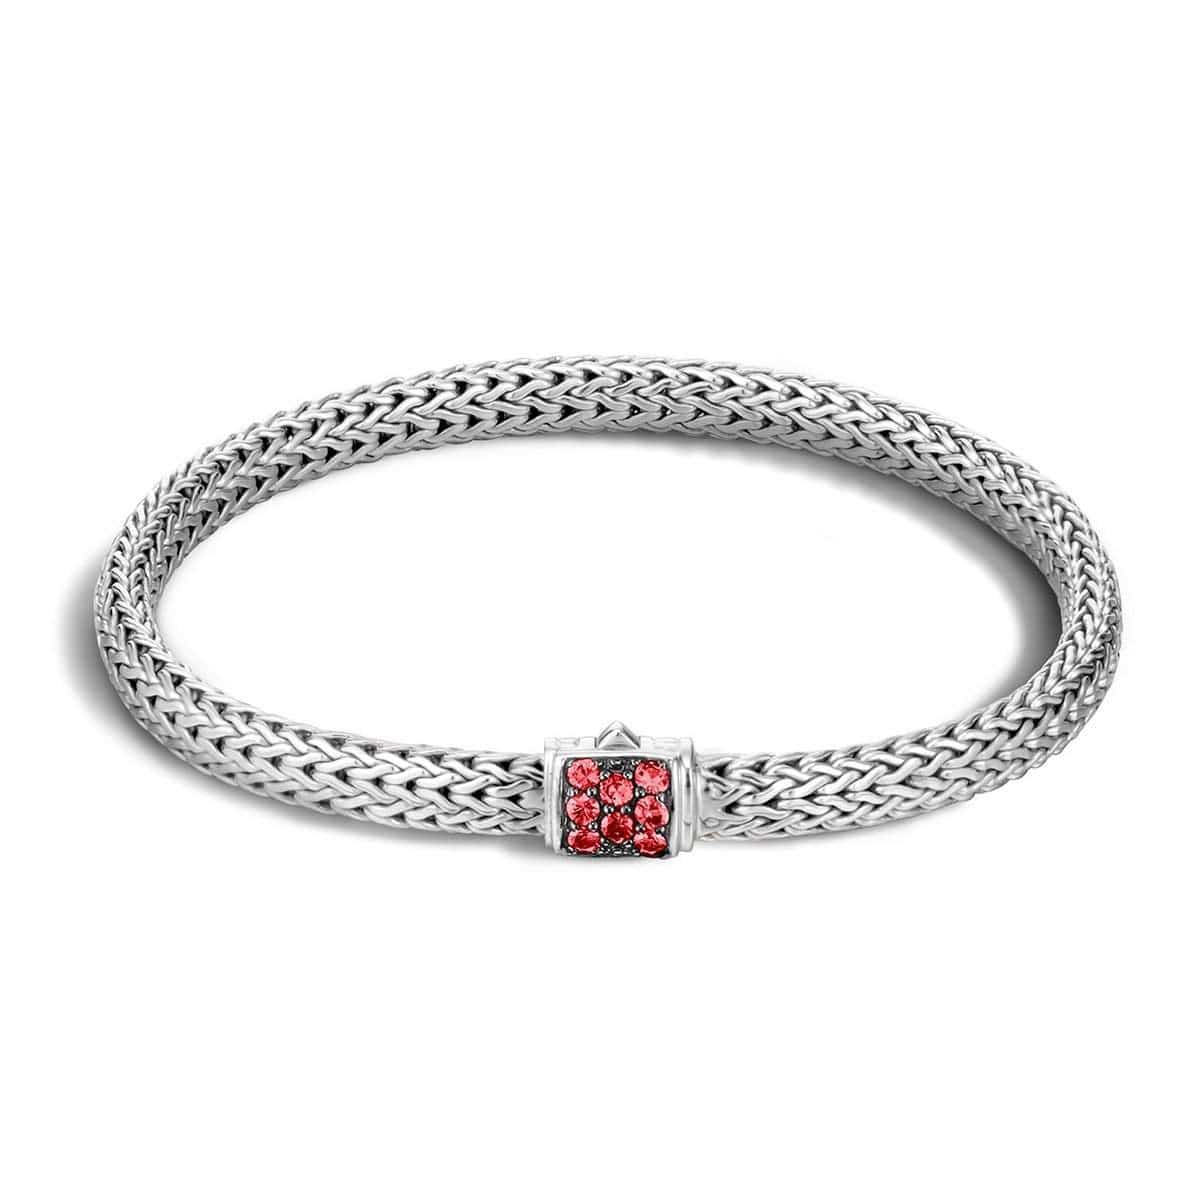 John Hardy Classic Chain Bracelet With Red Sapphire Xl Red sapphire e7T5F2m